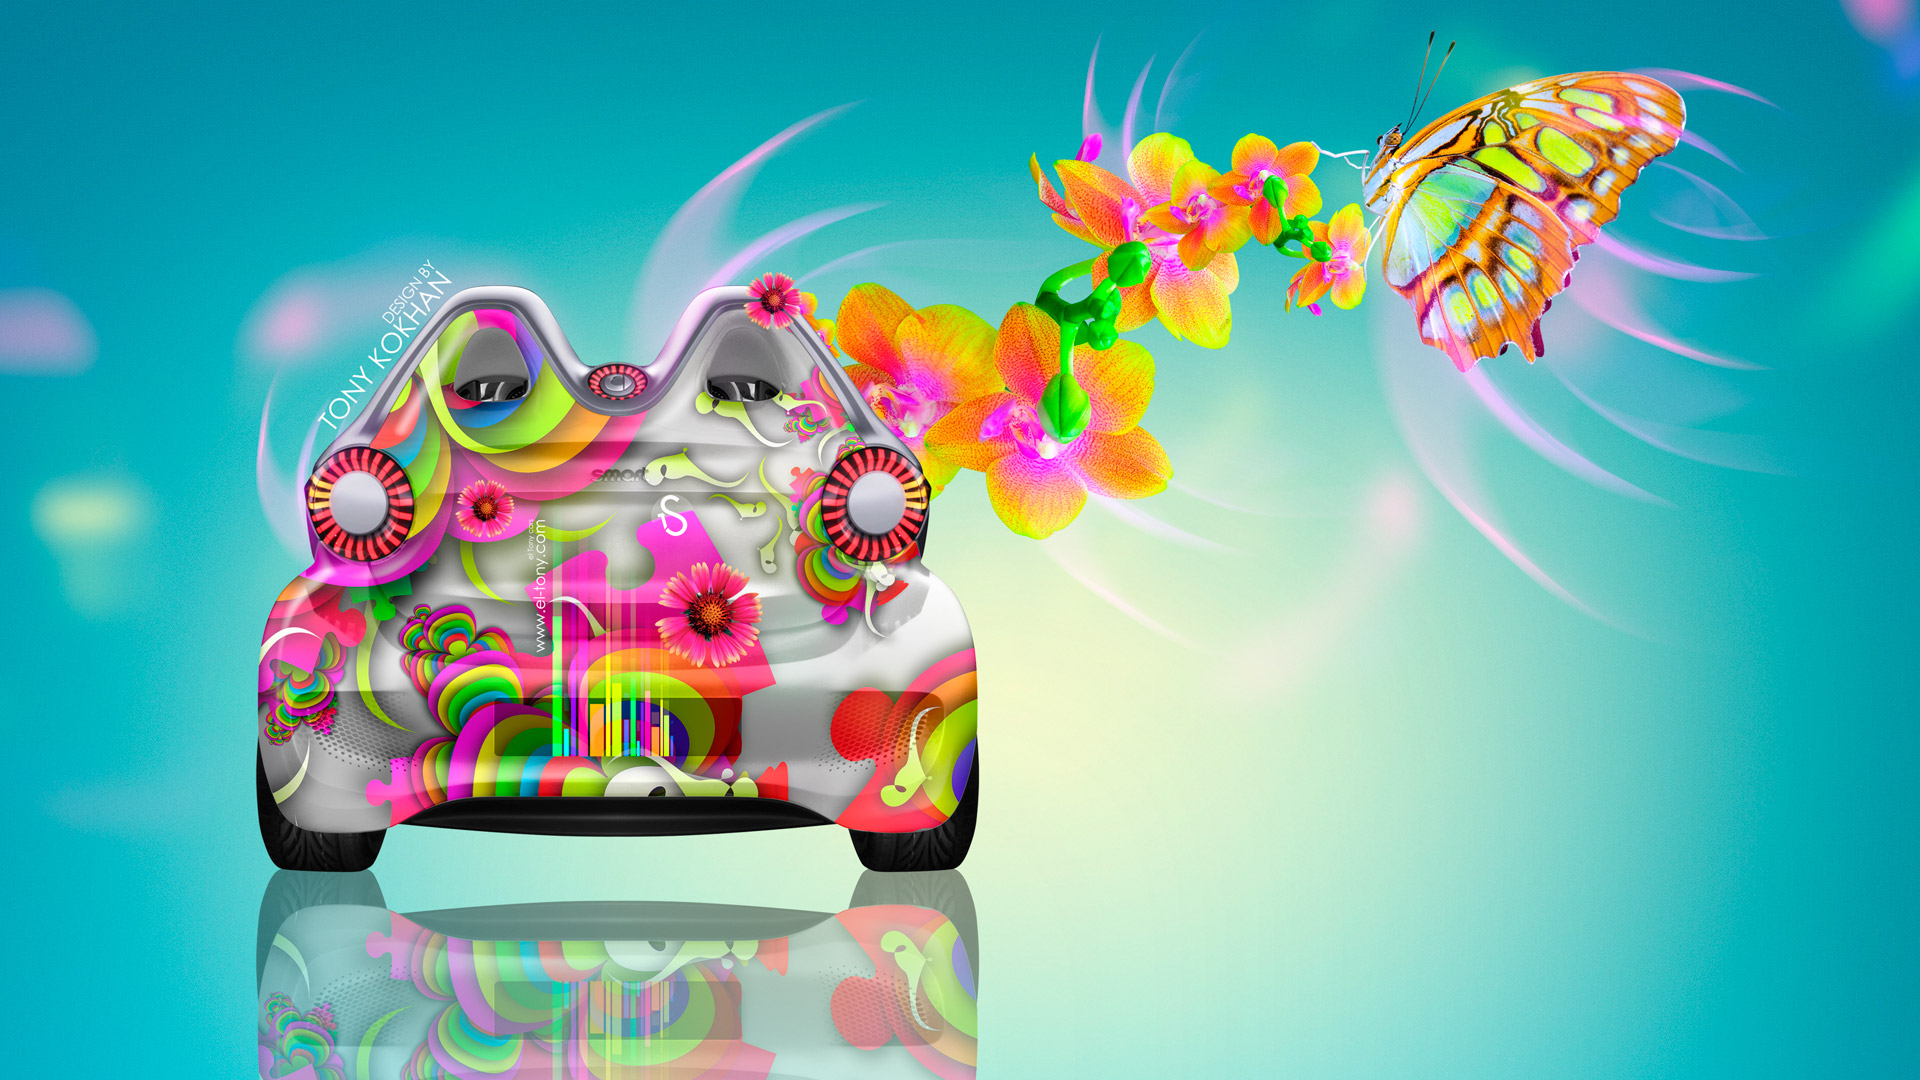 Smart-Electro-Fantasy-Butterfly-Flowers-Car-2014-Photoshop-Multicolors-HD-Wallpapers-design-by-Tony-Kokhan-[www.el-tony.com]